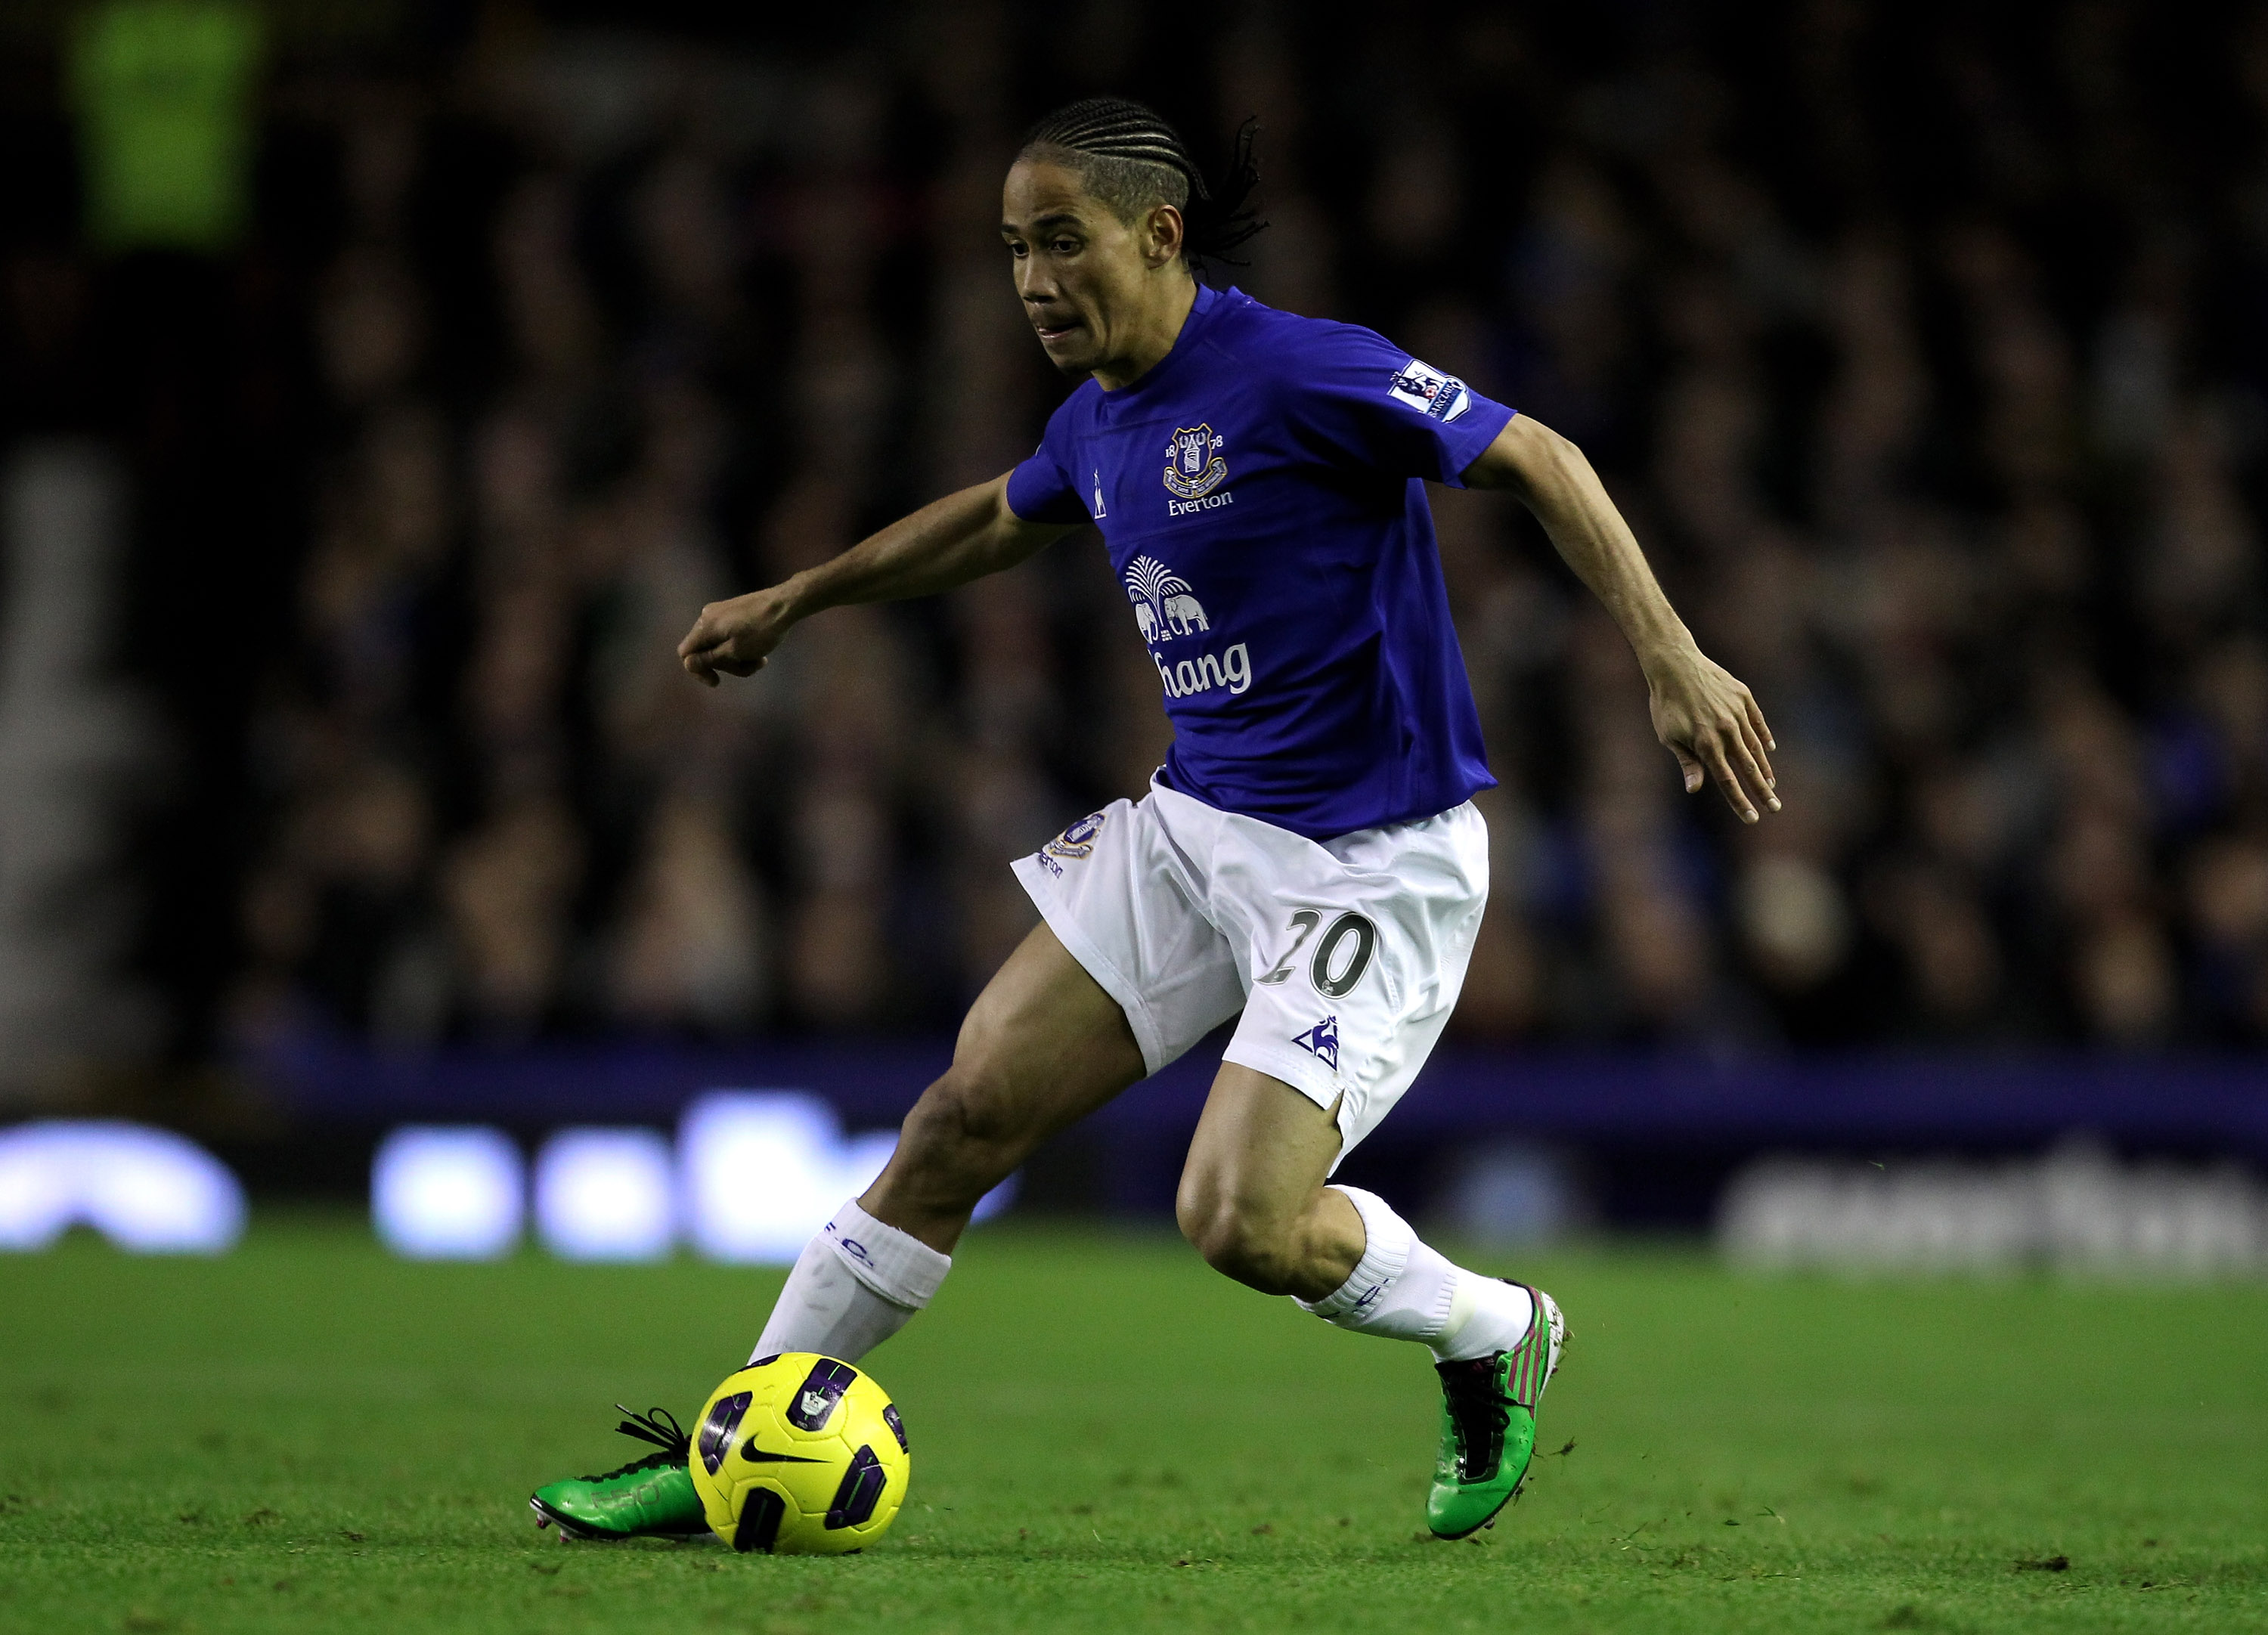 LIVERPOOL, ENGLAND - JANUARY 05:  Steven Pienaar of Everton in action during the Barclays Premier League match between Everton and Tottenham Hotspur at Goodison Park on January 5, 2011 in Liverpool, England. (Photo by Alex Livesey/Getty Images)